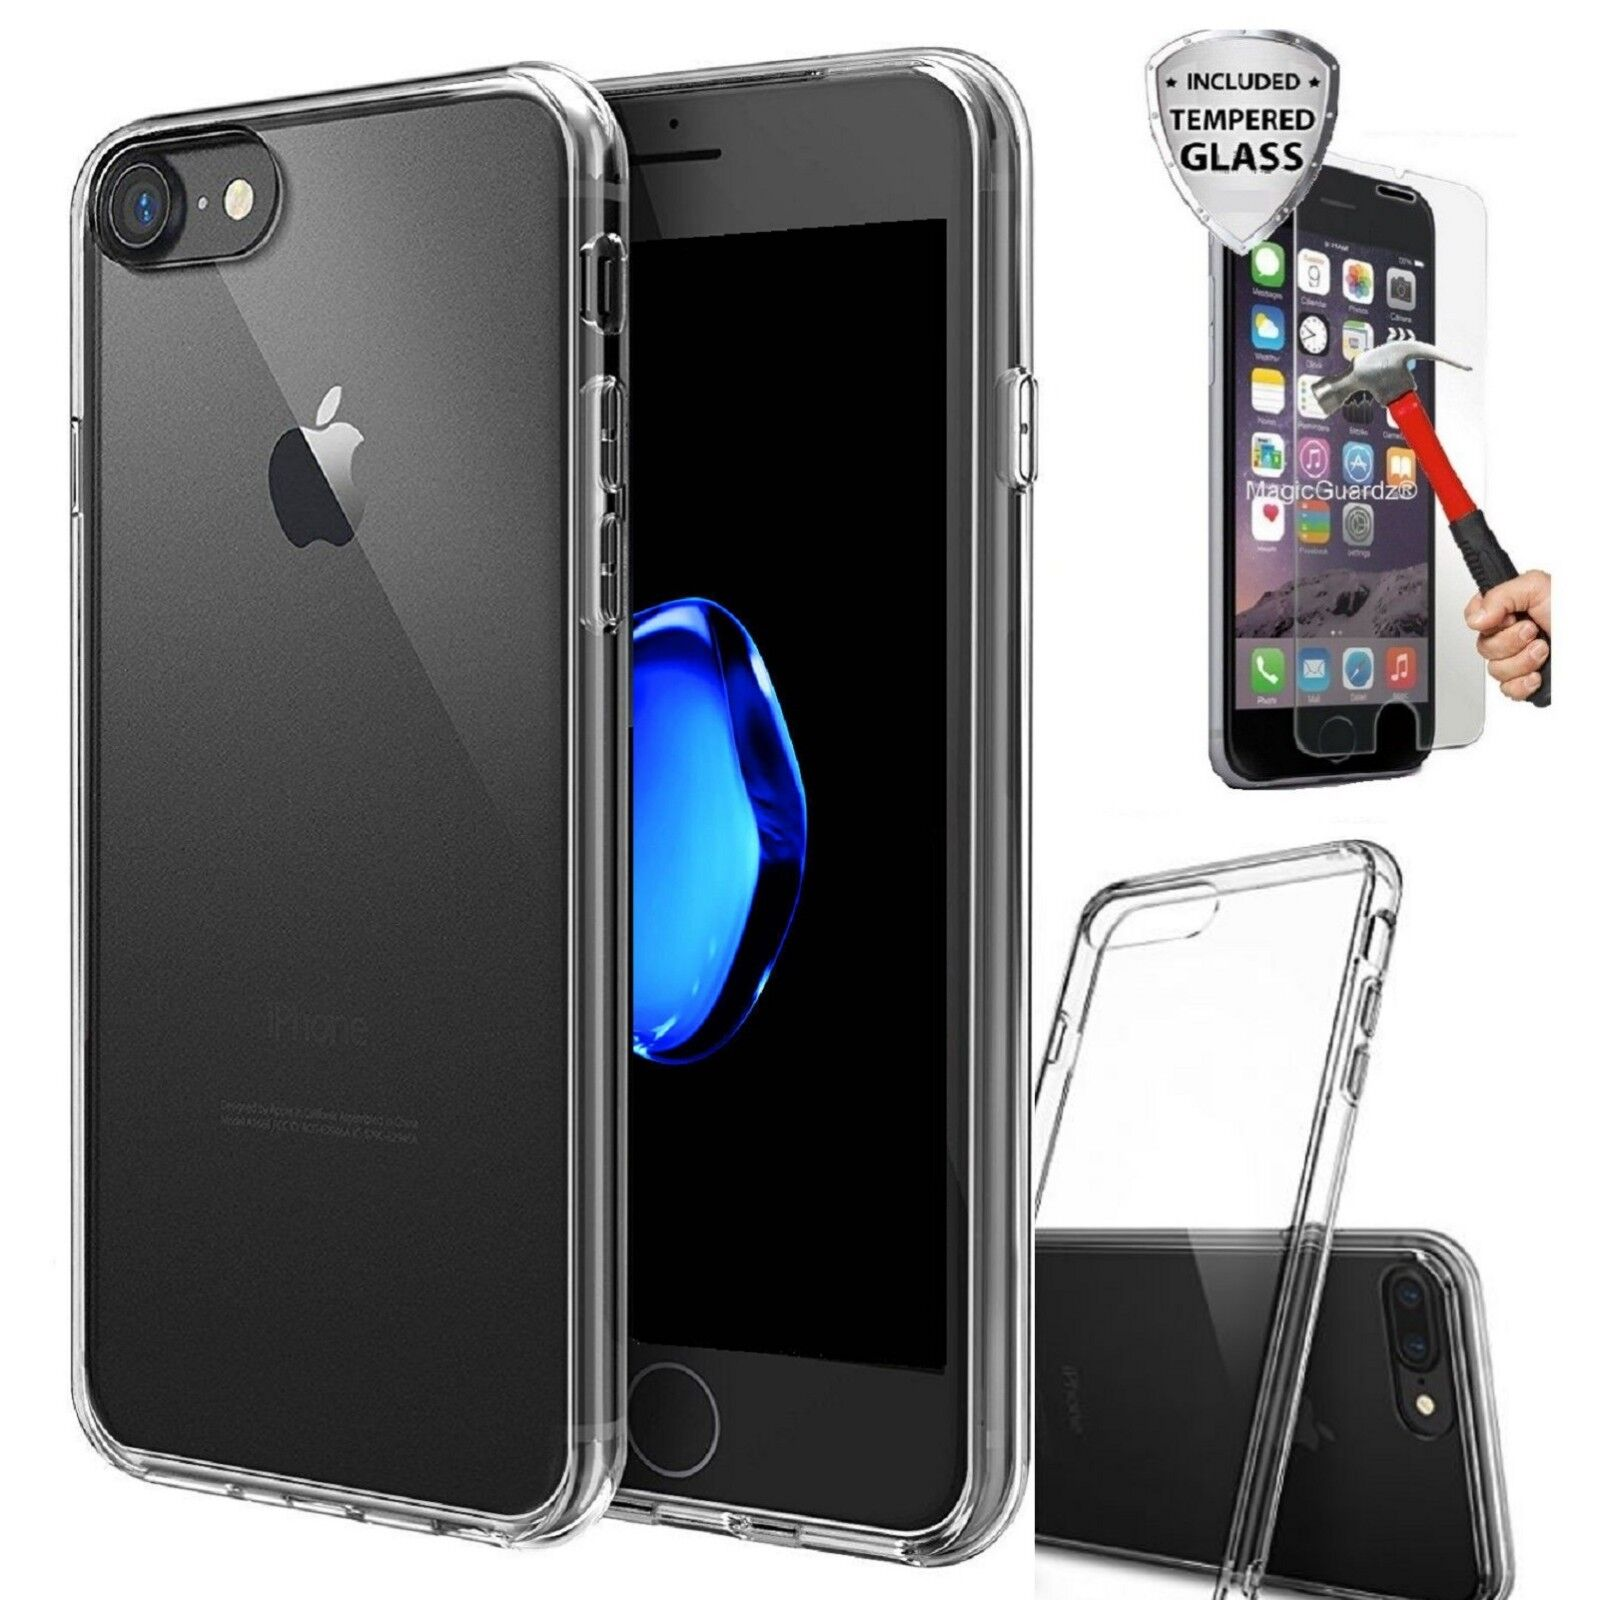 Silicone Clear Cover Bumper Rubber Shockproof + Tempered Glass For iPhone 8 Case